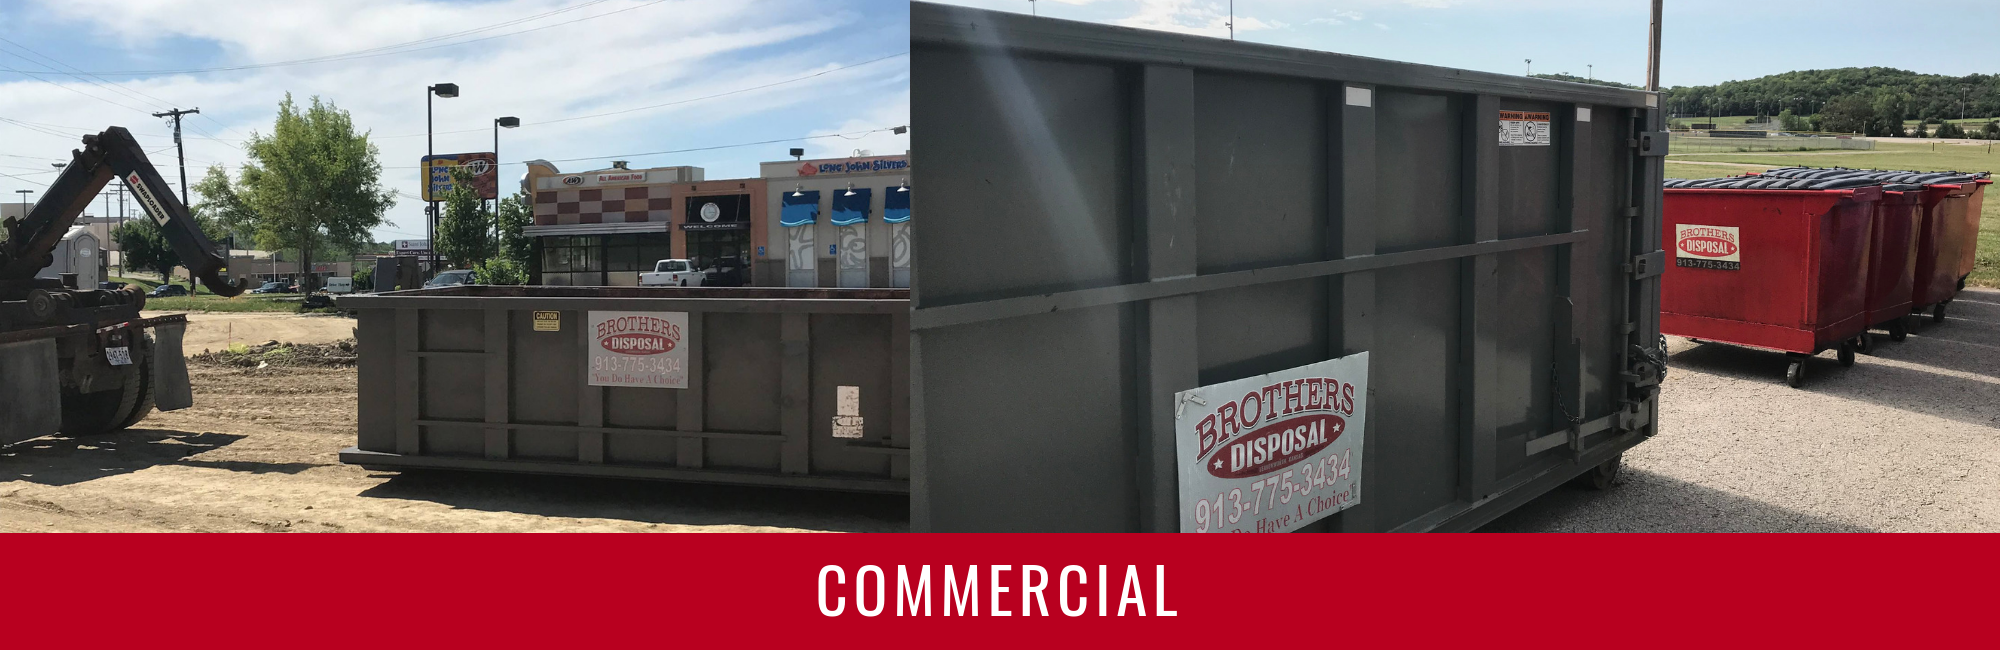 Commercial Waste Management services